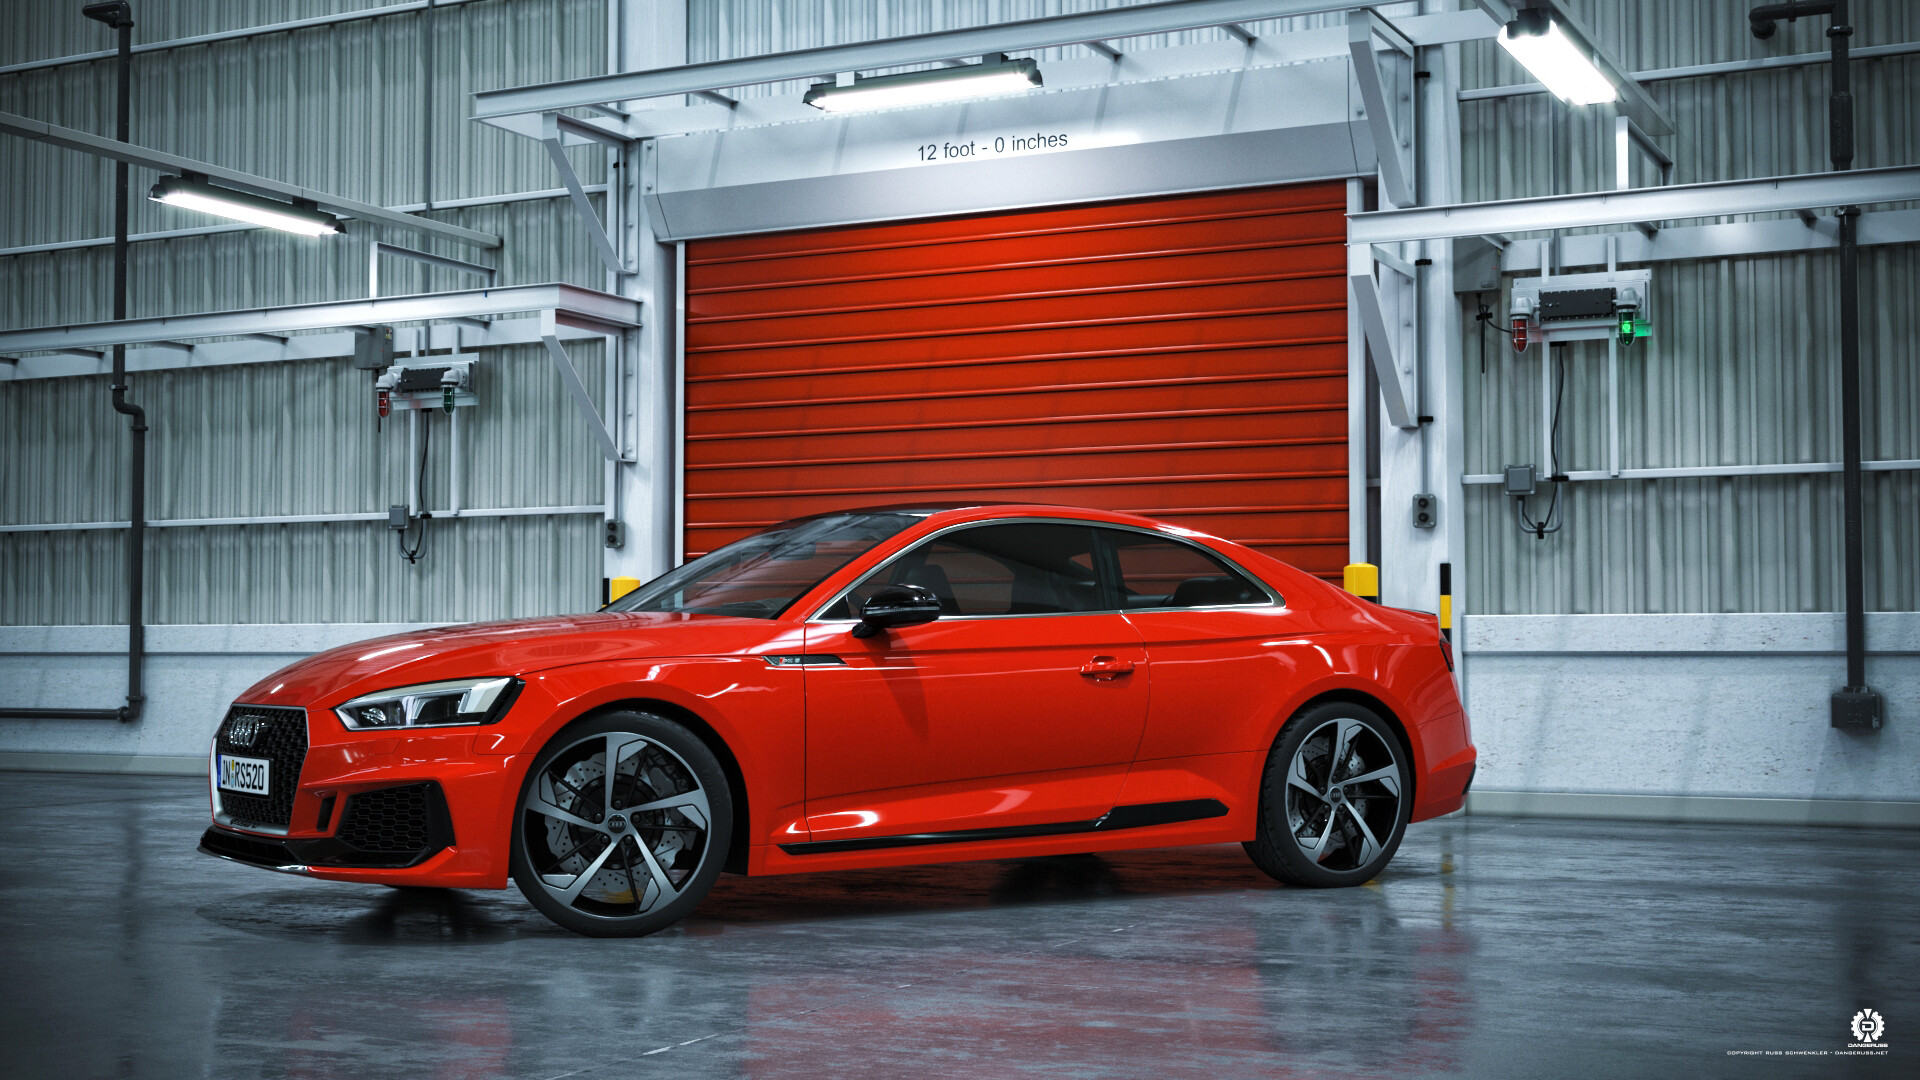 Russ Schwenkler - 2020 Audi RS5 Coupe